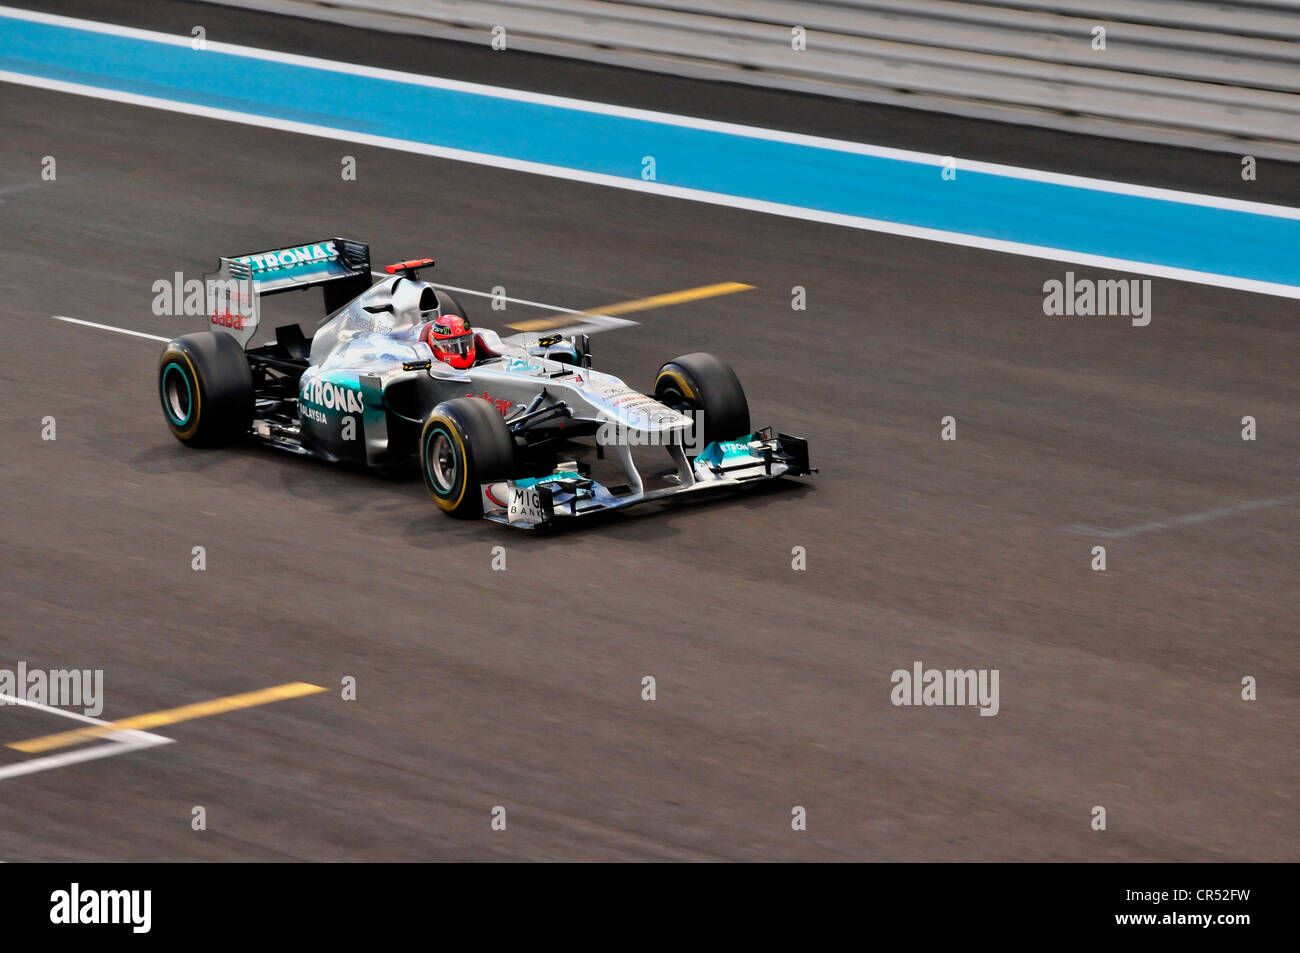 Formula One racing car of Michael Schumacher, Germany, start number 7, of the Team Mercedes-GP on the Yas Marina - Stock Image